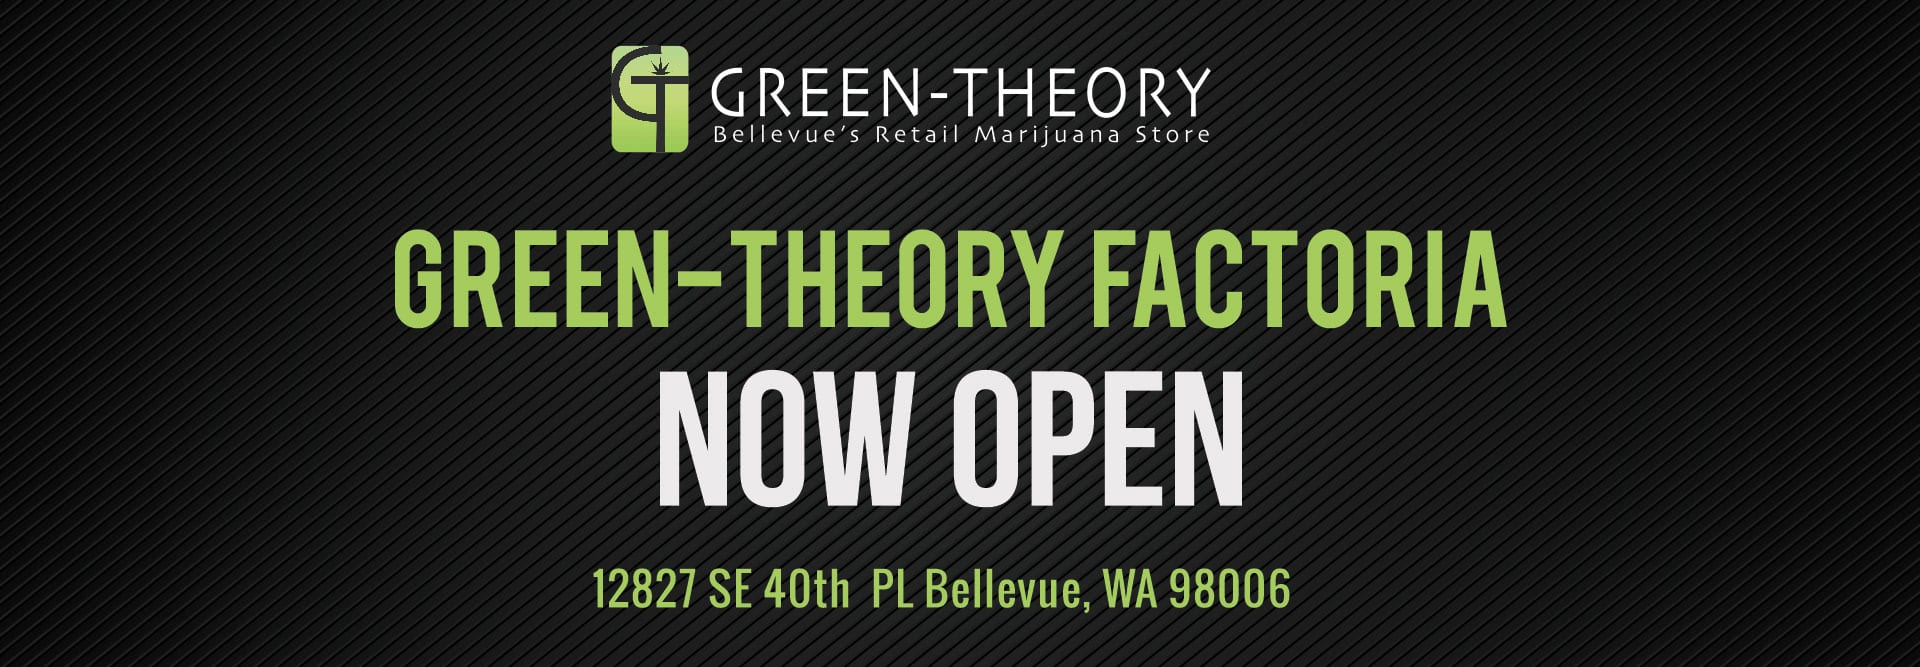 green-theory-factoria-now-open